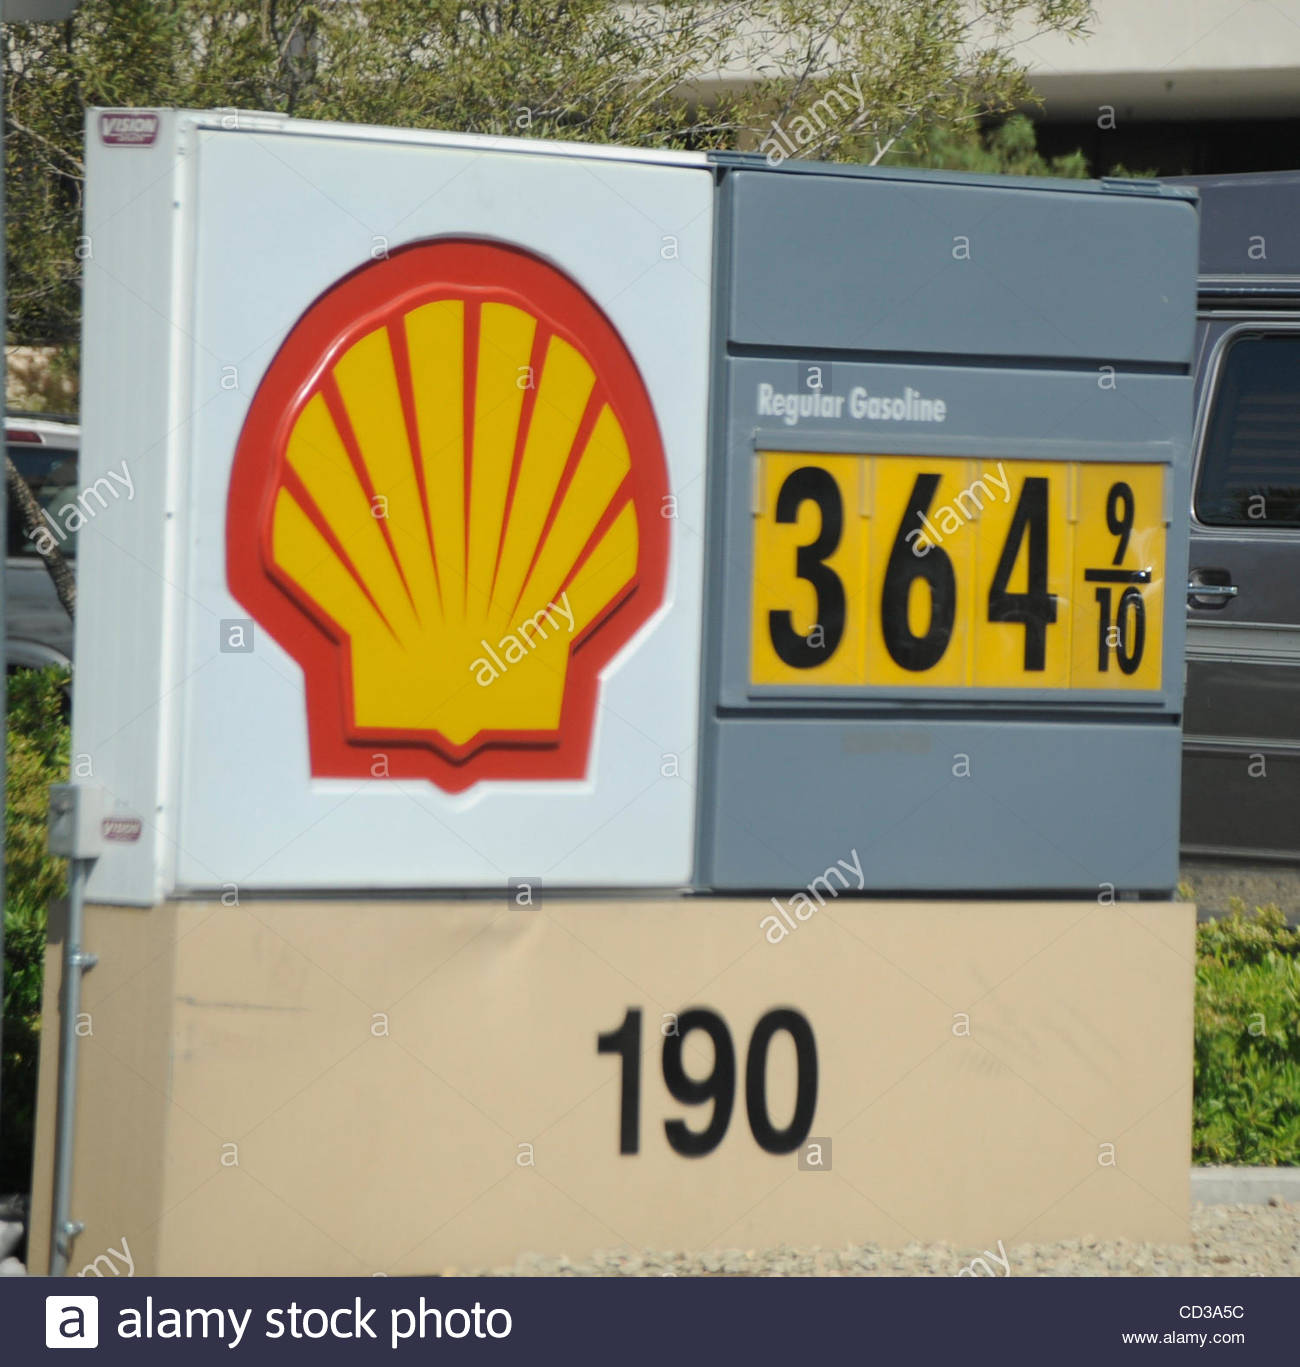 Las Vegas Gas Prices >> A Shell Gas Station Had The Highest Price For Regular Gas At 3 64 A